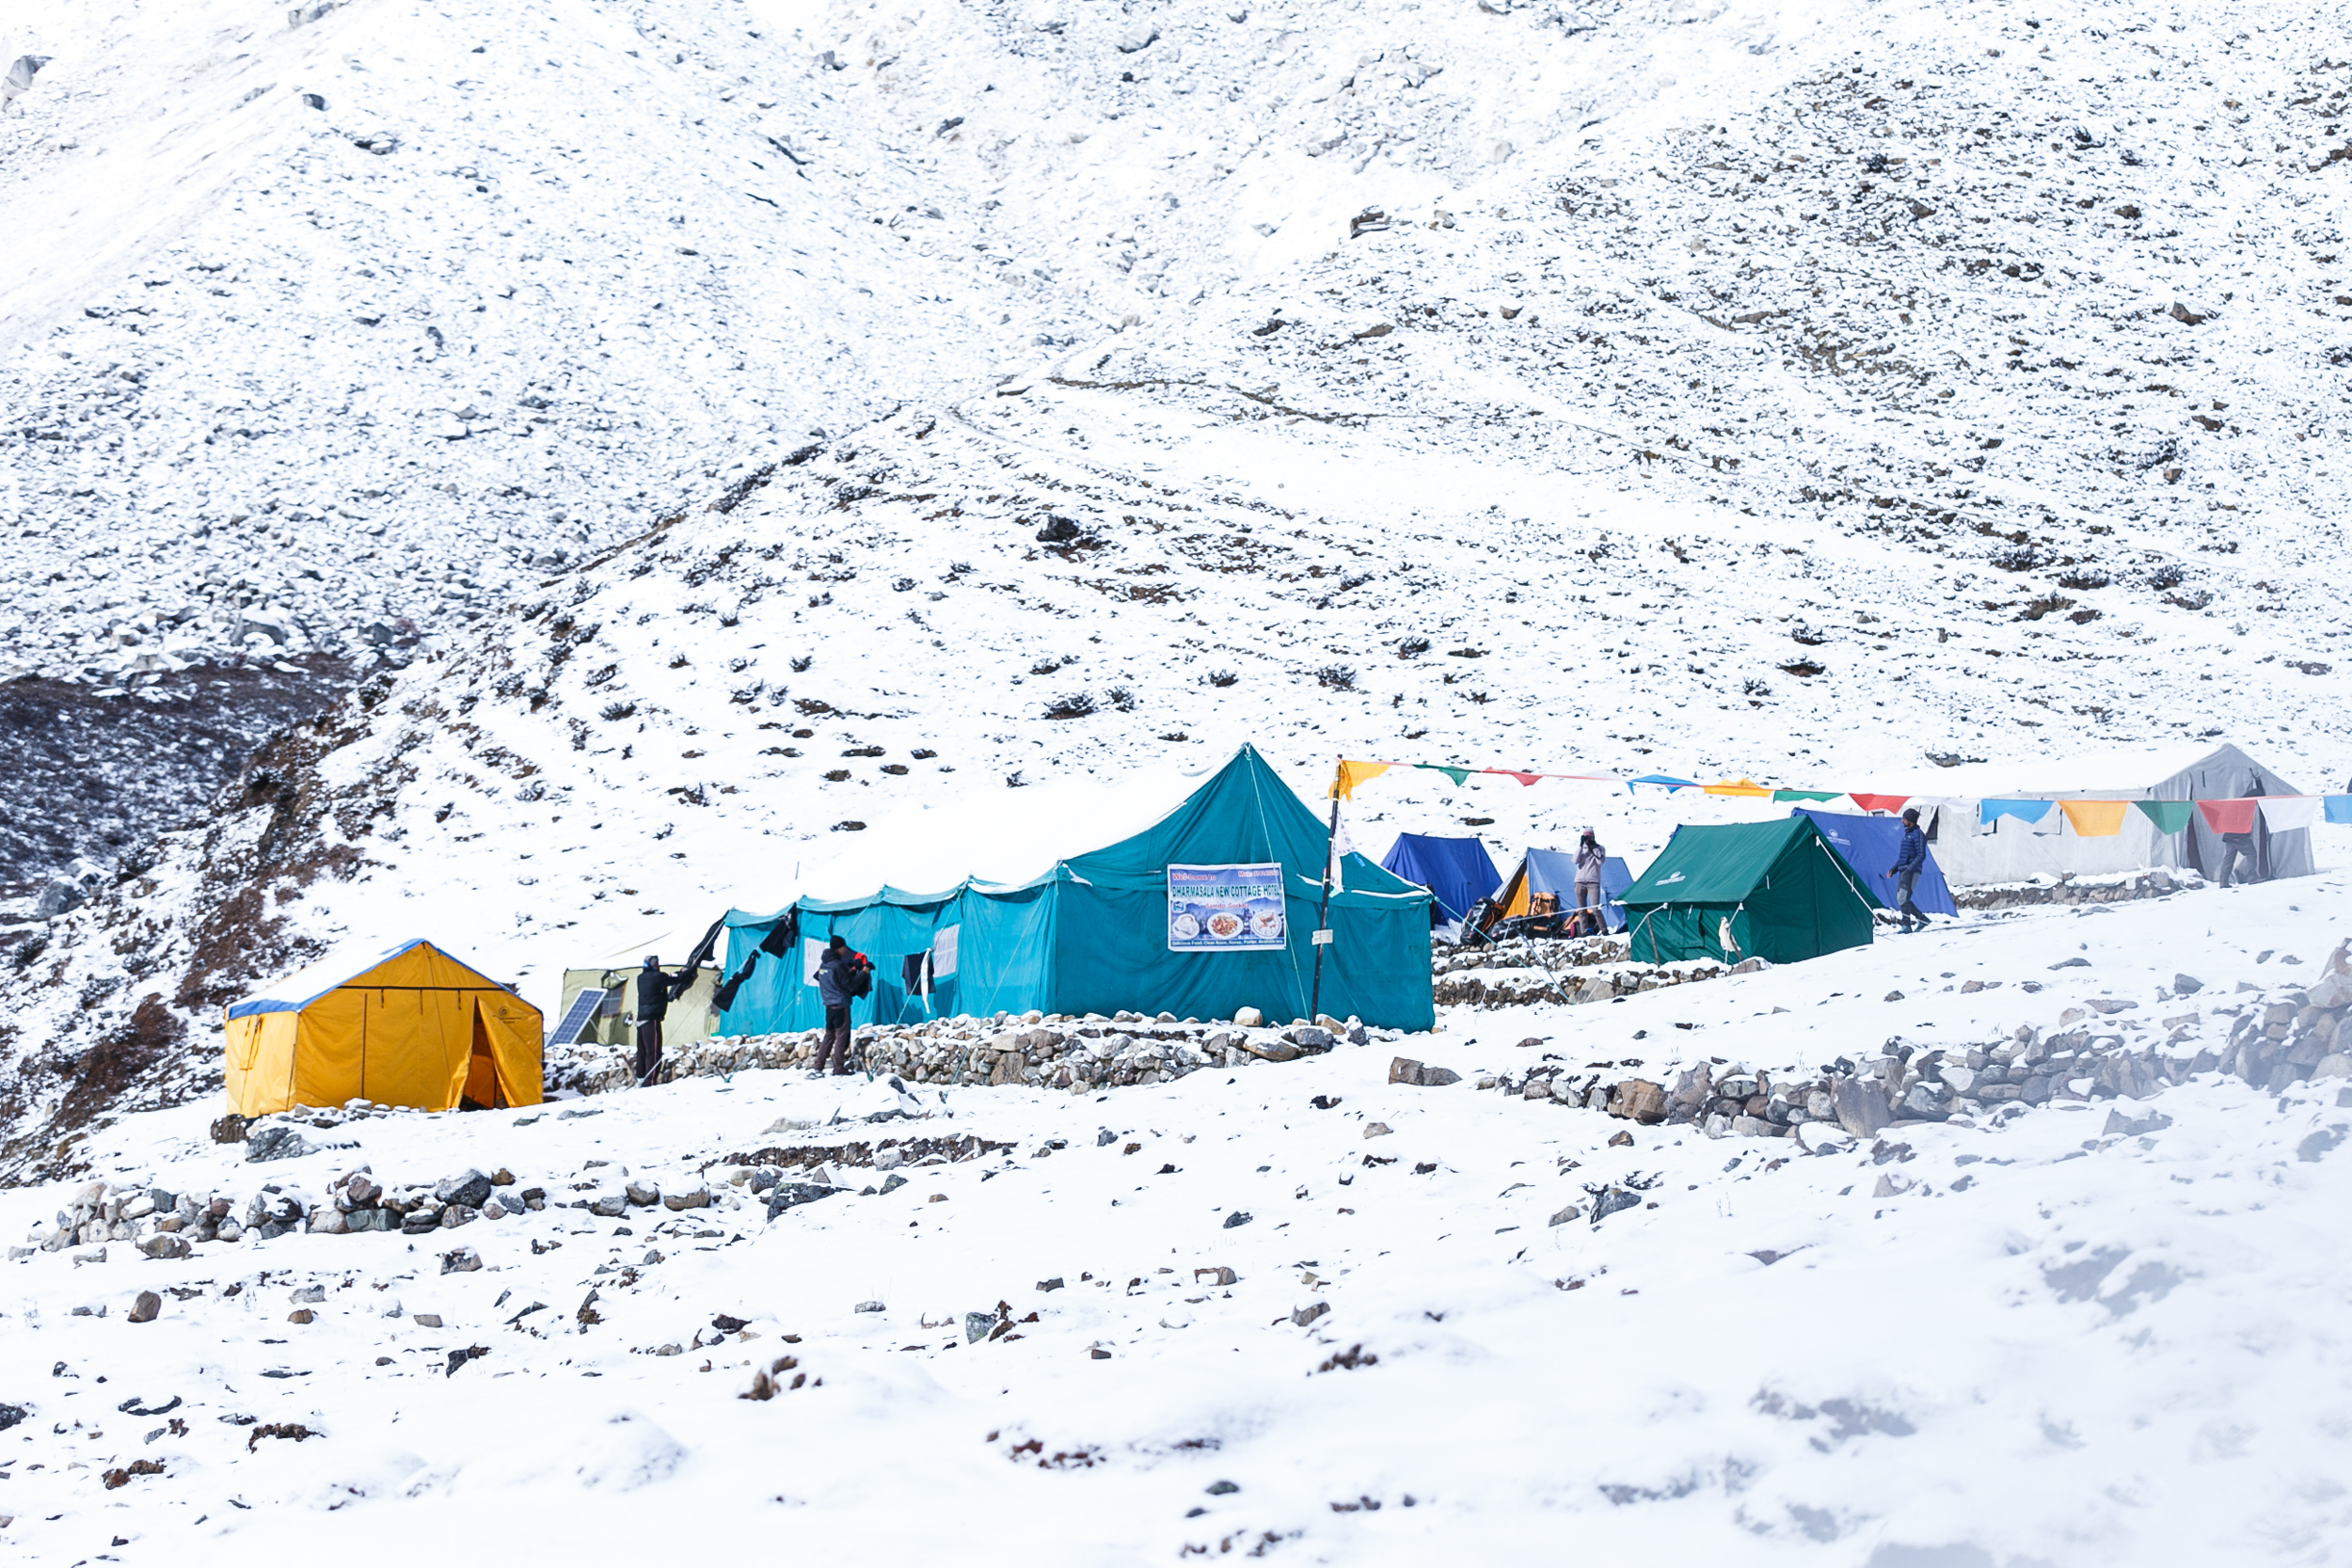 A tent camp at Dharamsala (4,400 m) on the Manaslu Circuit.